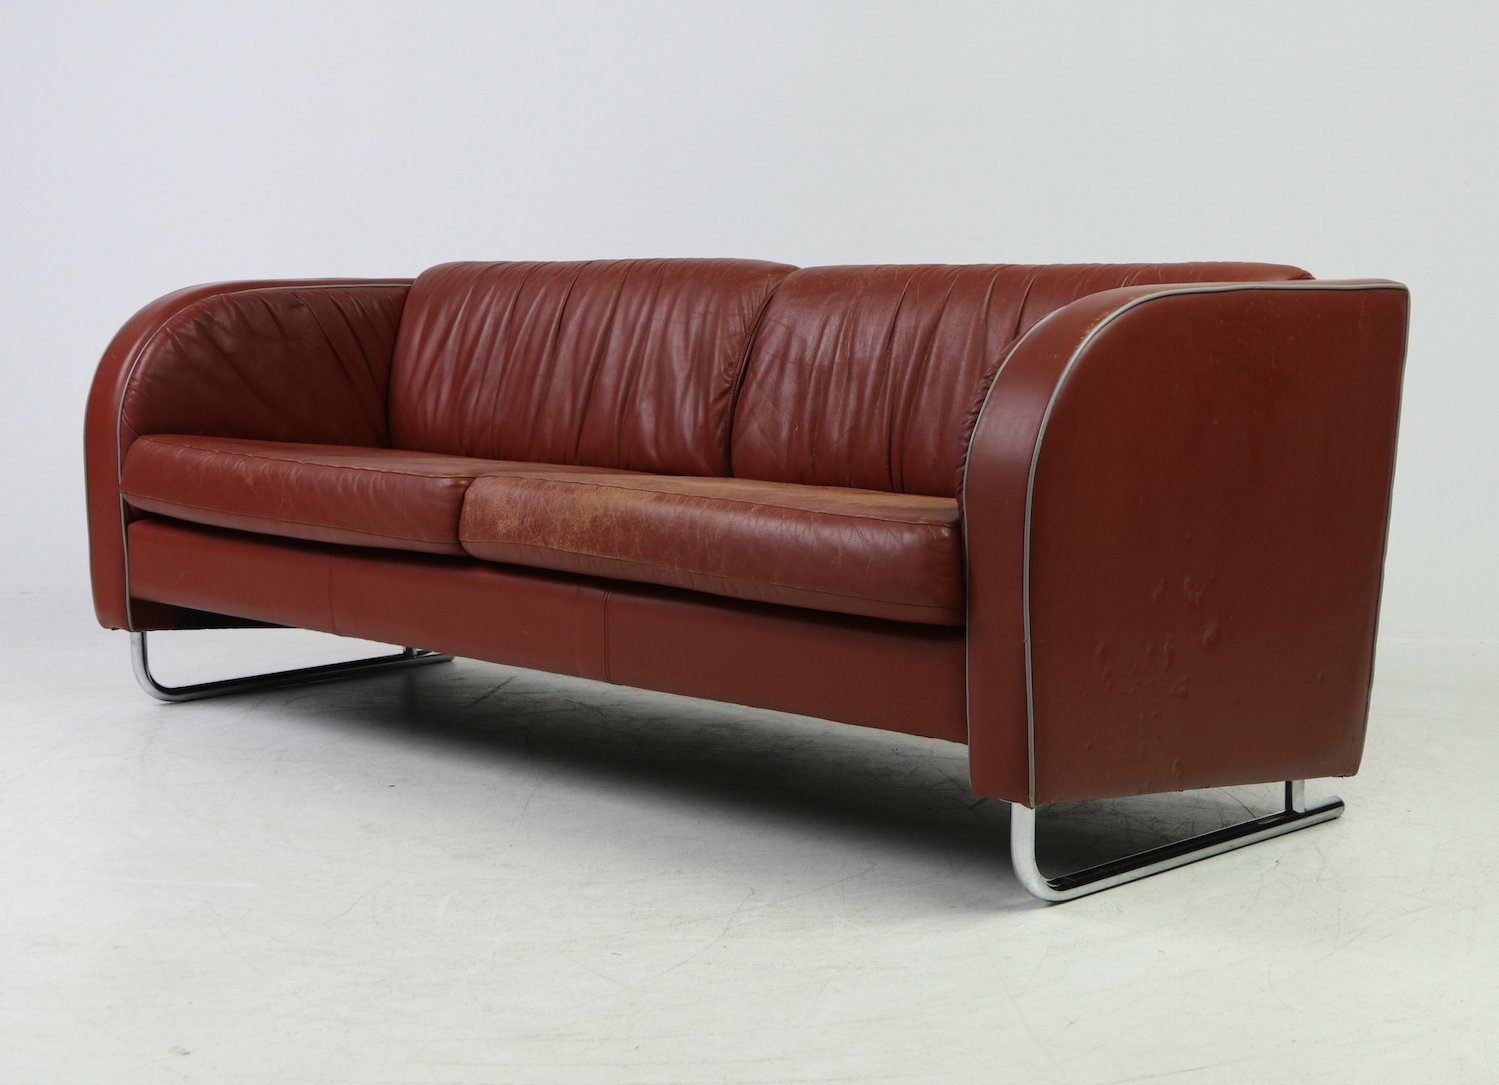 Art Deco Style Sofa By Scandinavian Furniture Maker 1960s 116453